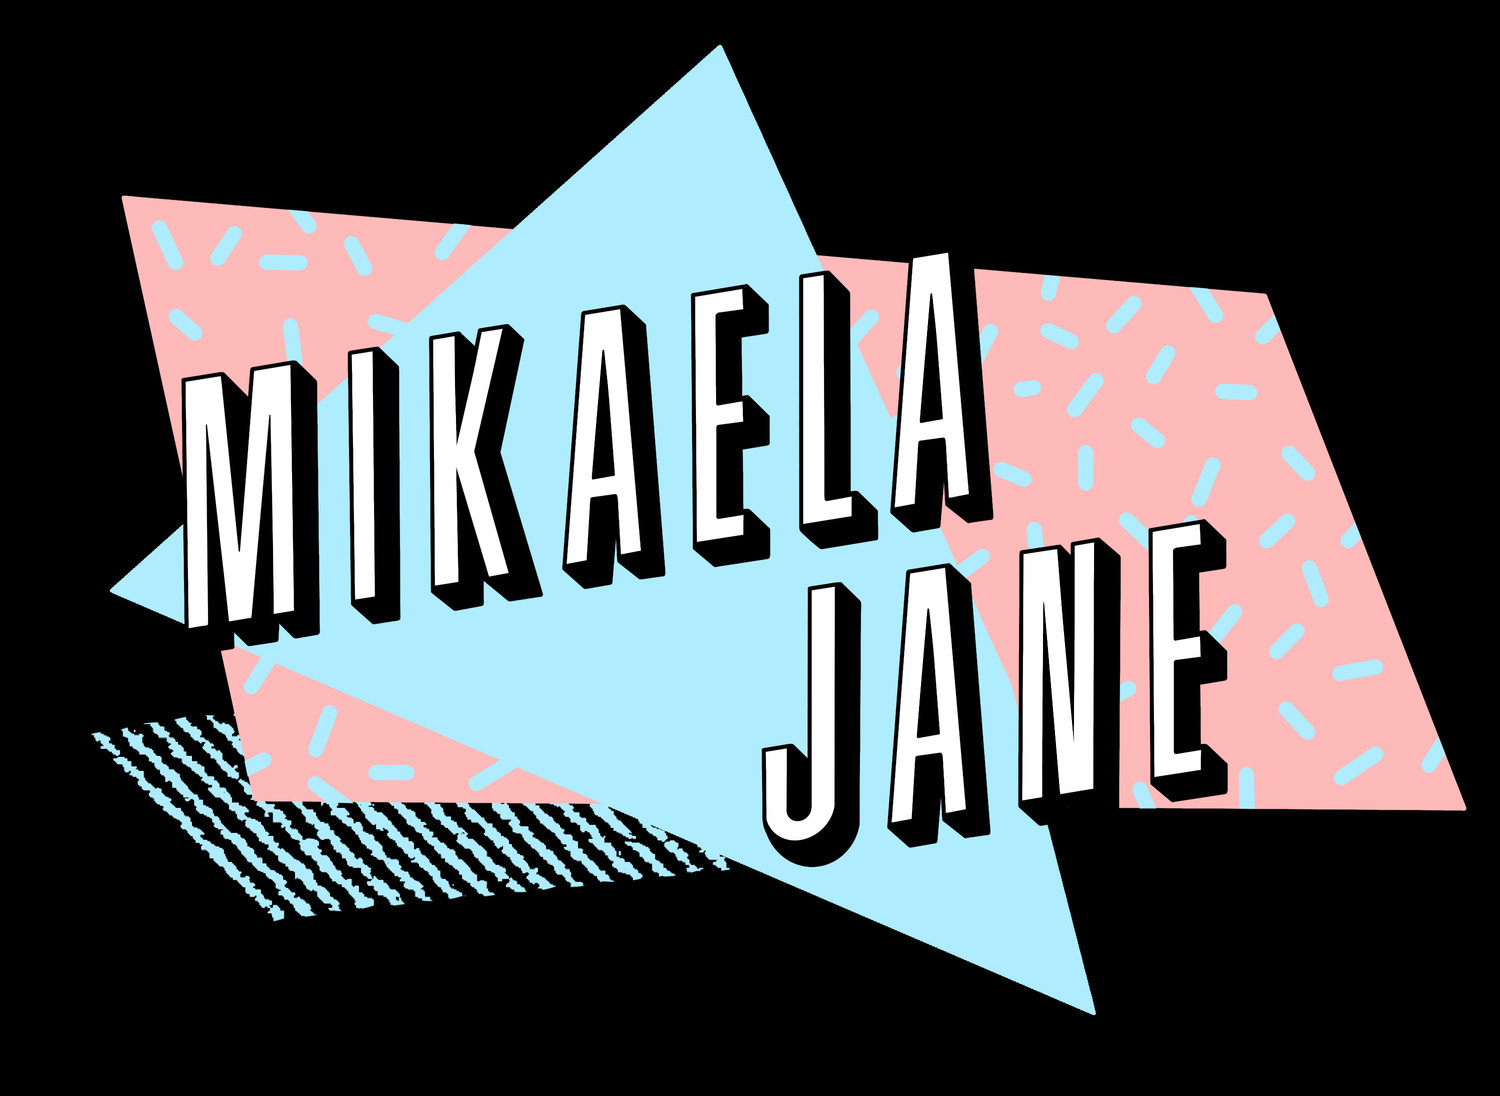 Mikaela Jane // illustrator